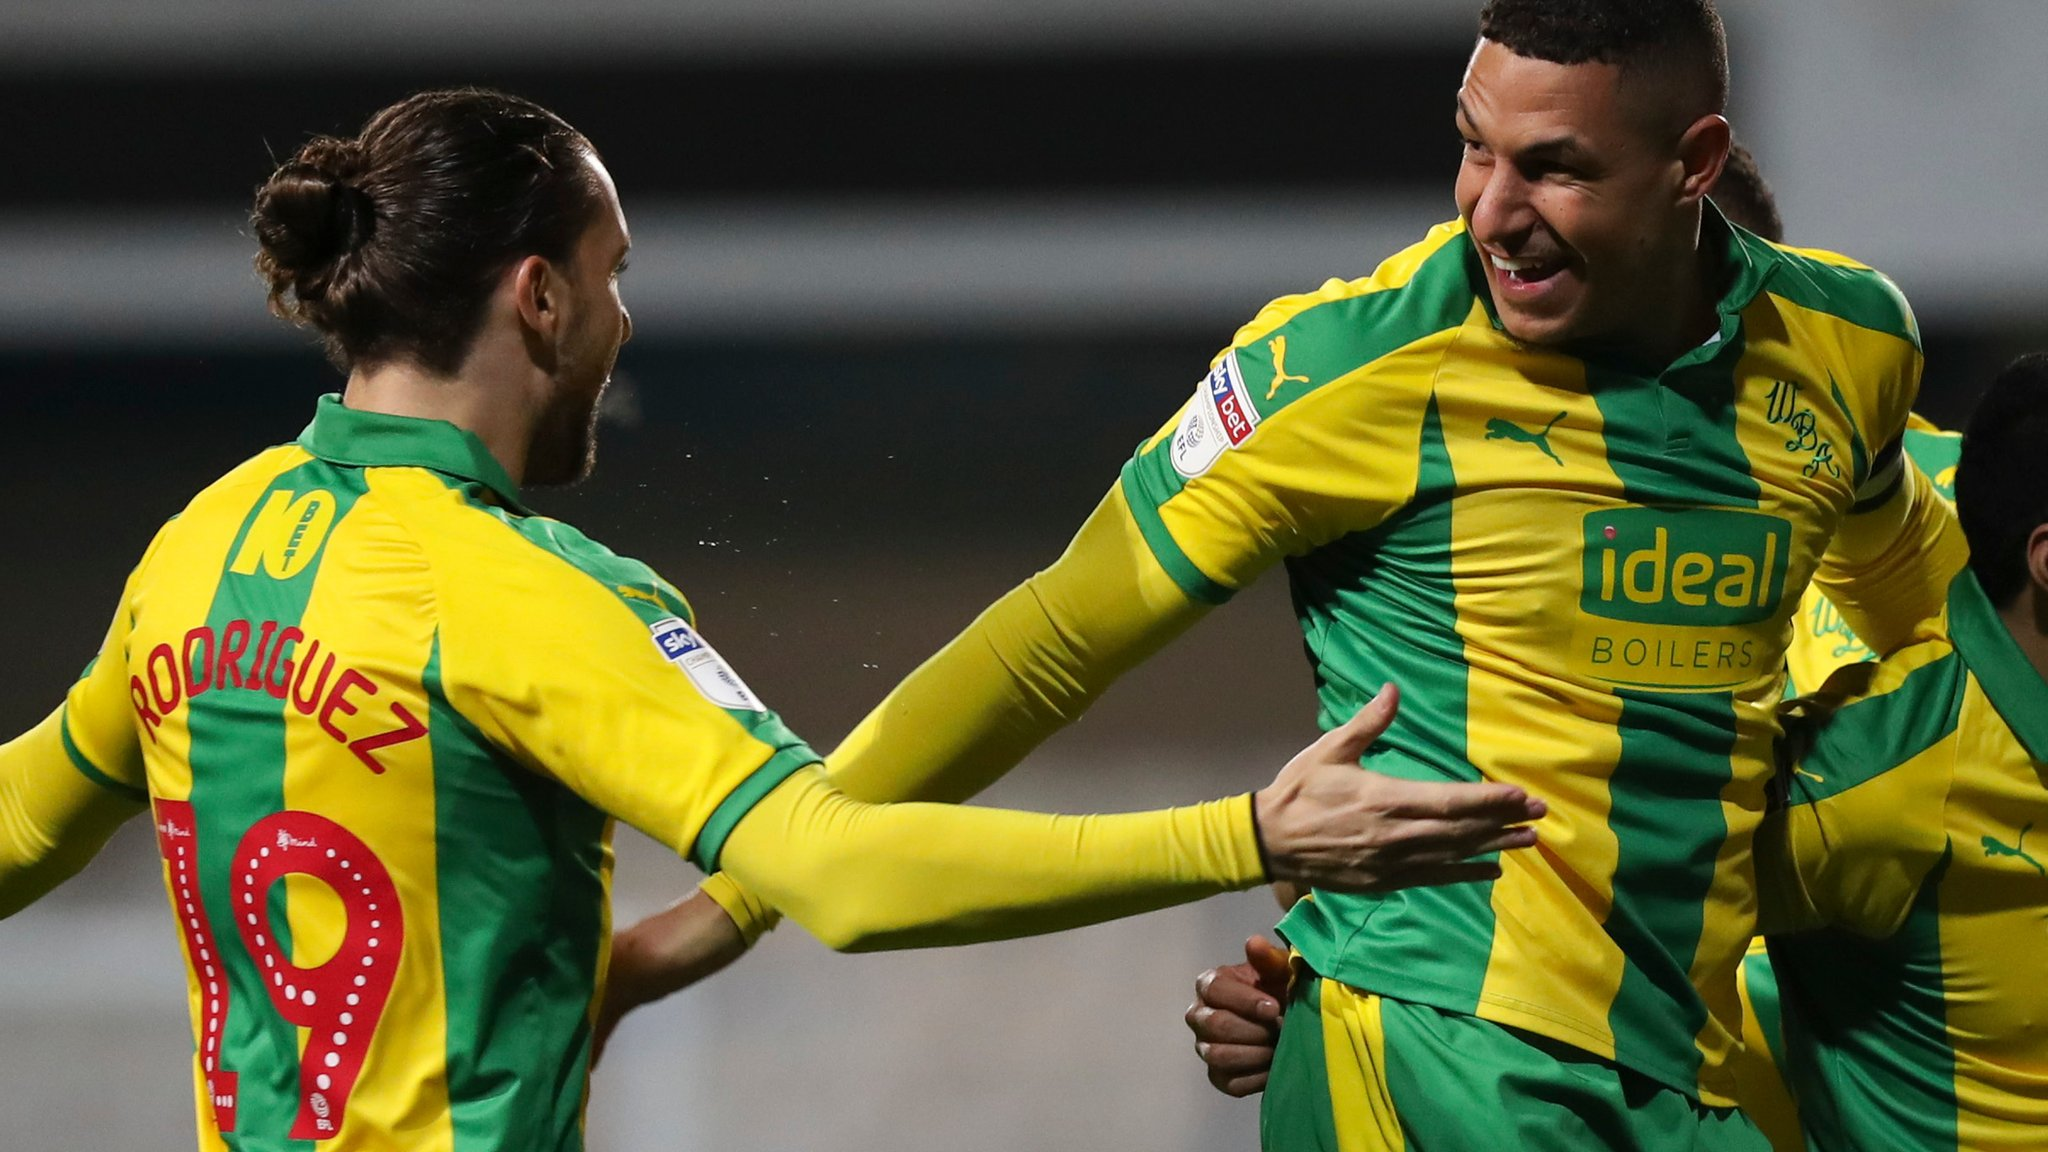 QPR 2-3 West Brom: Late Jake Livermore goal in Baggies win